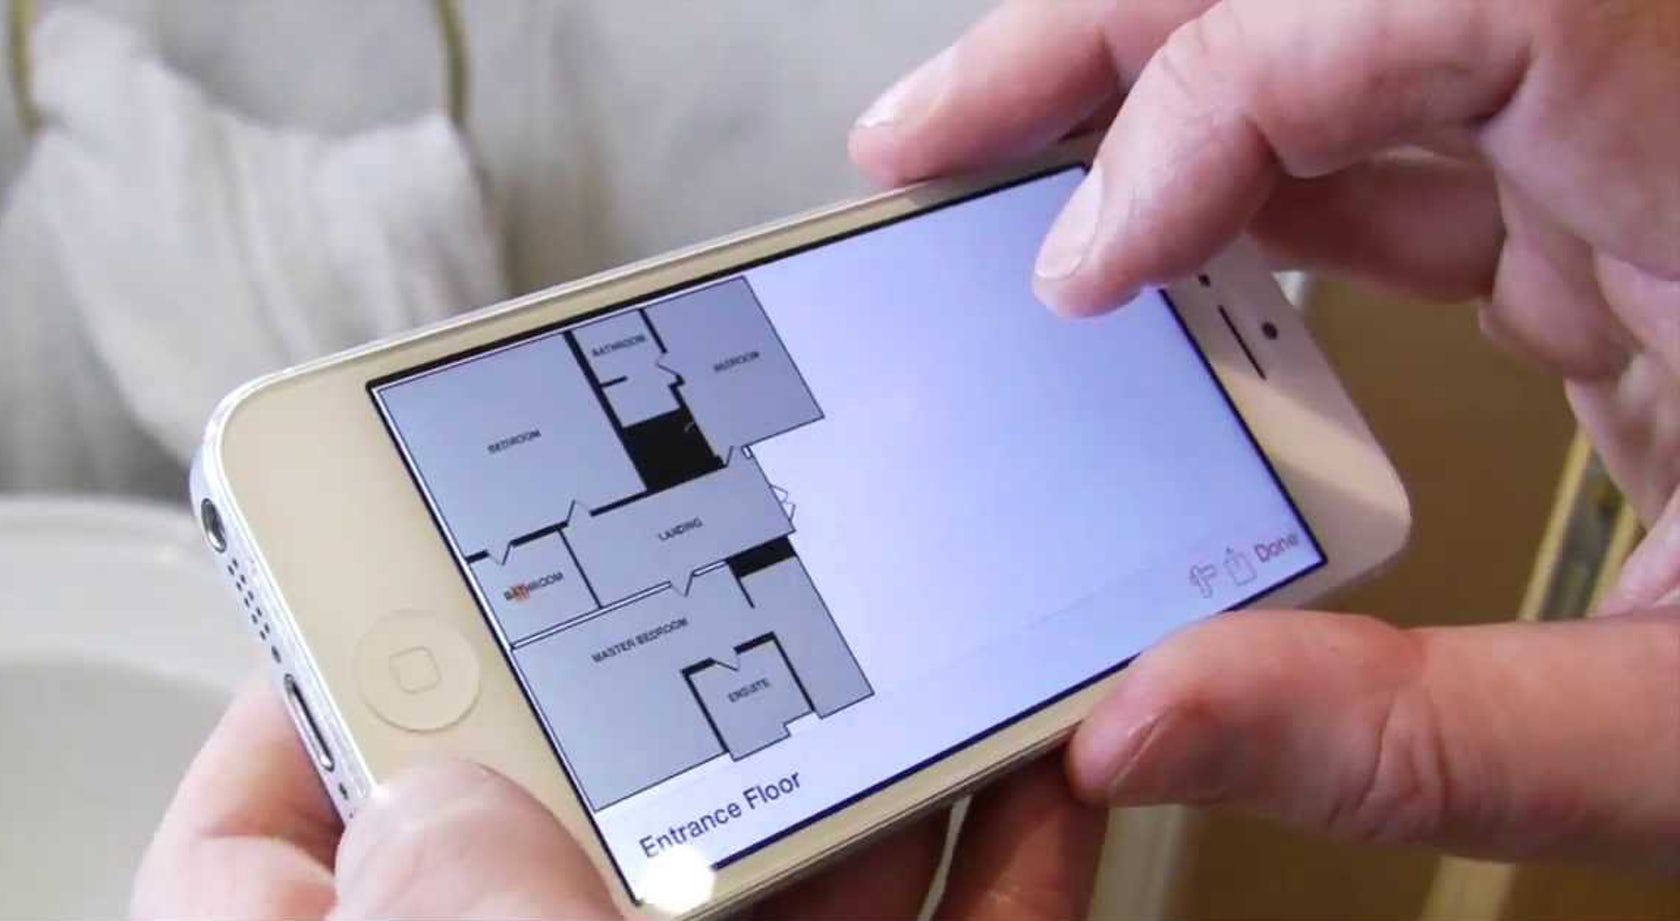 Architect S App Of The Week Draw A Floor Plan In Seconds With RoomScan Pro